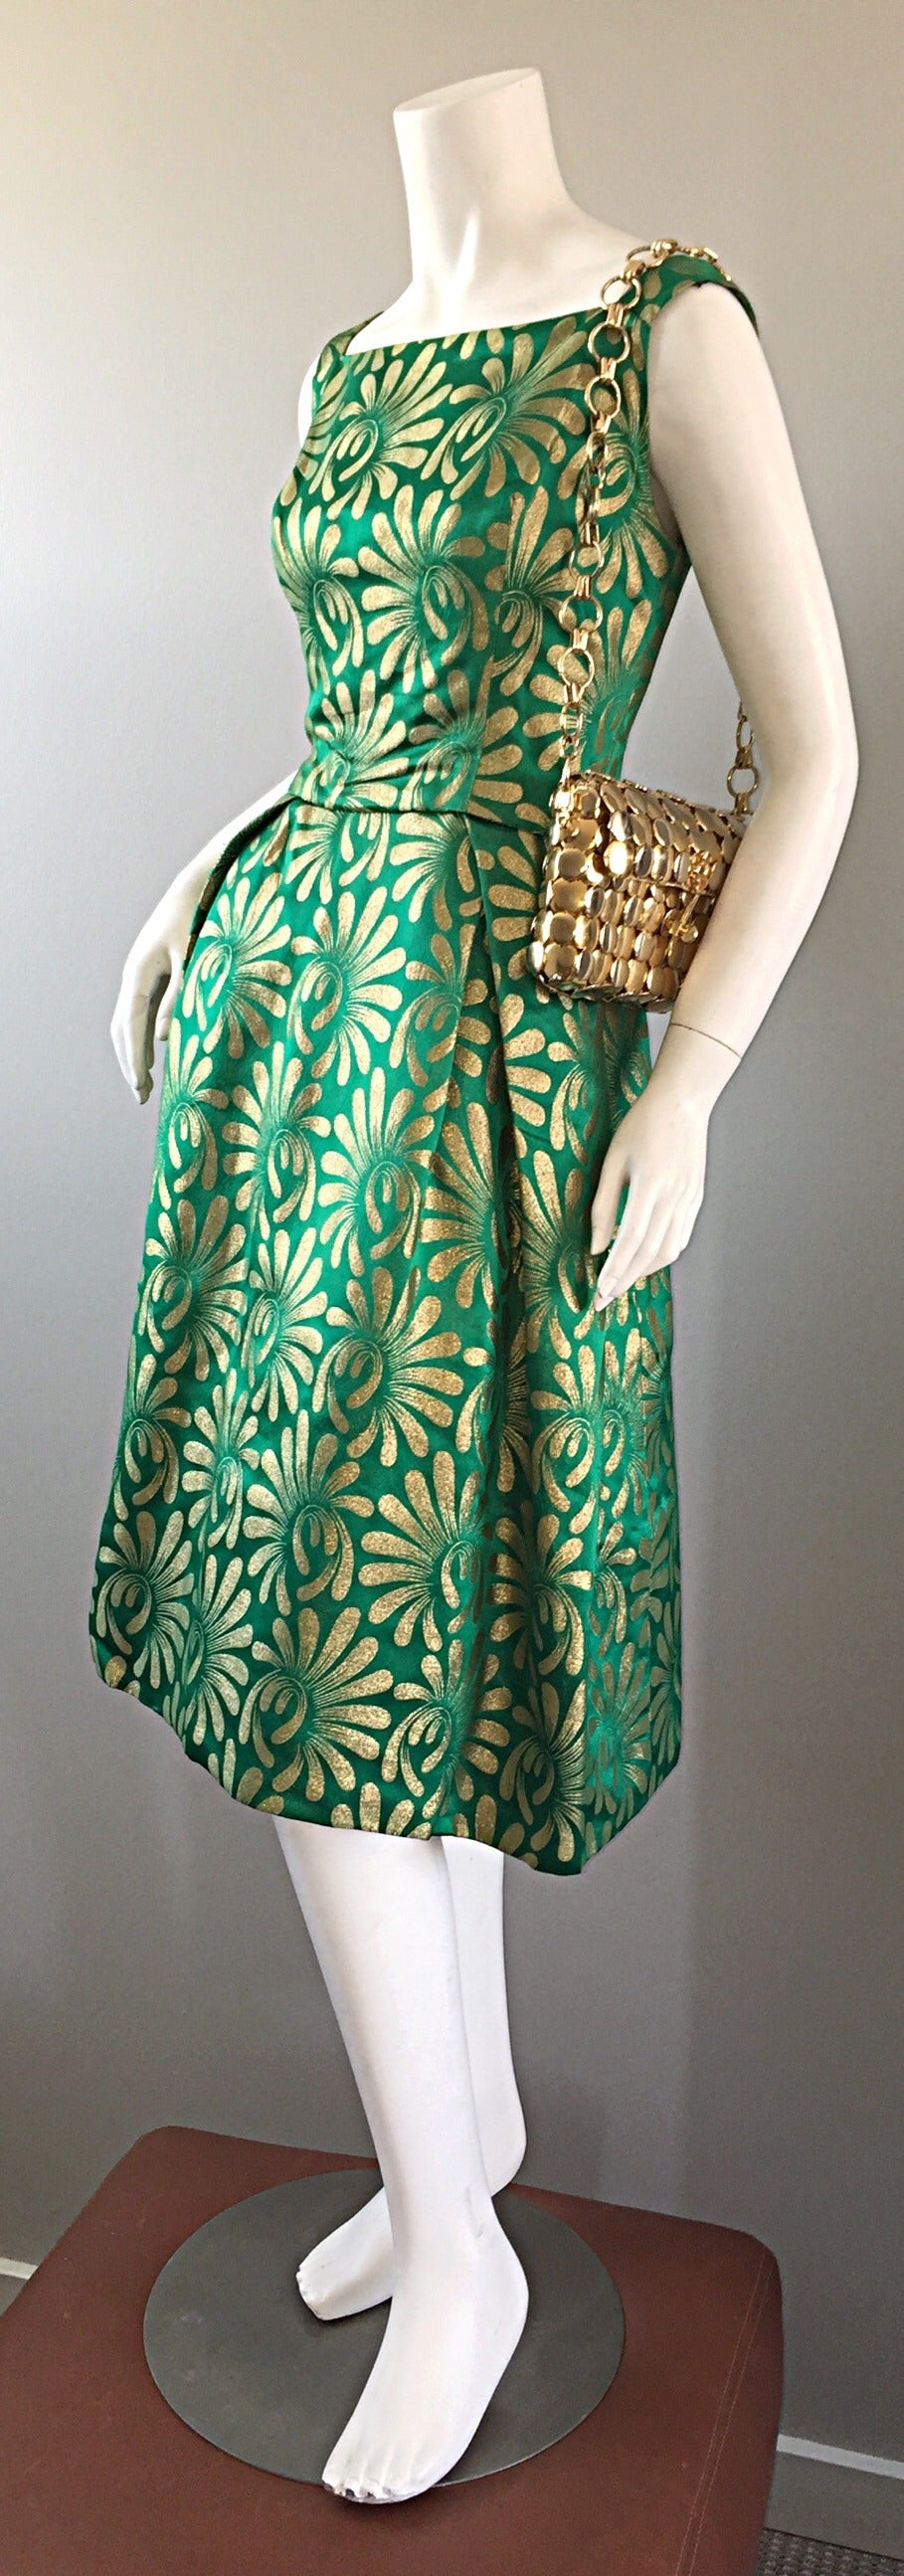 1950s 50s Vintage Blauner for Bonwit Teller Green + Gold ' New Look ' Silk Dress 4